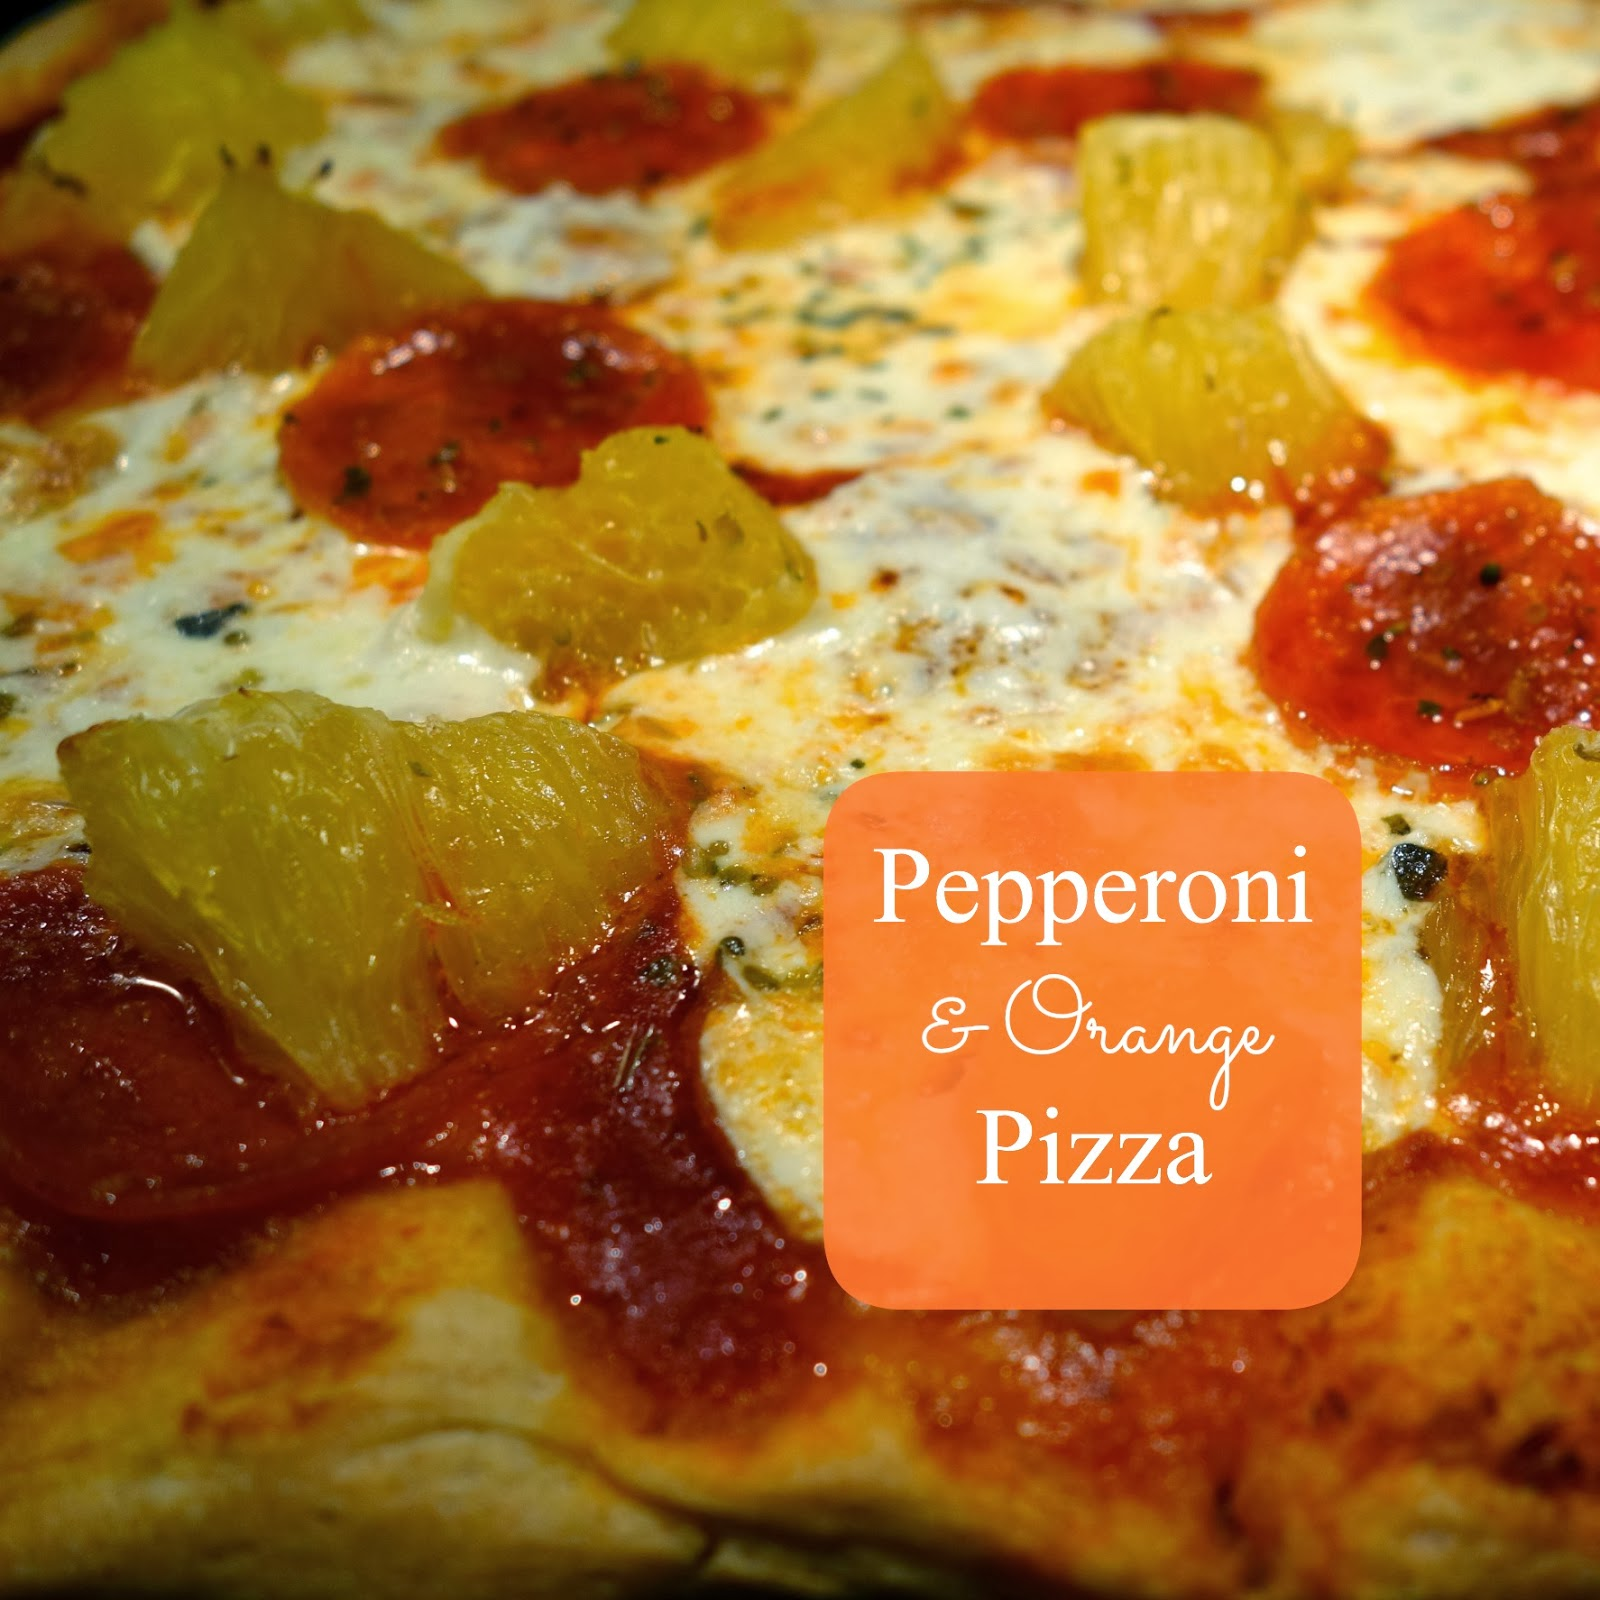 Sweet caramelized orange chunks and spicy pepperoni liven up this pizza.